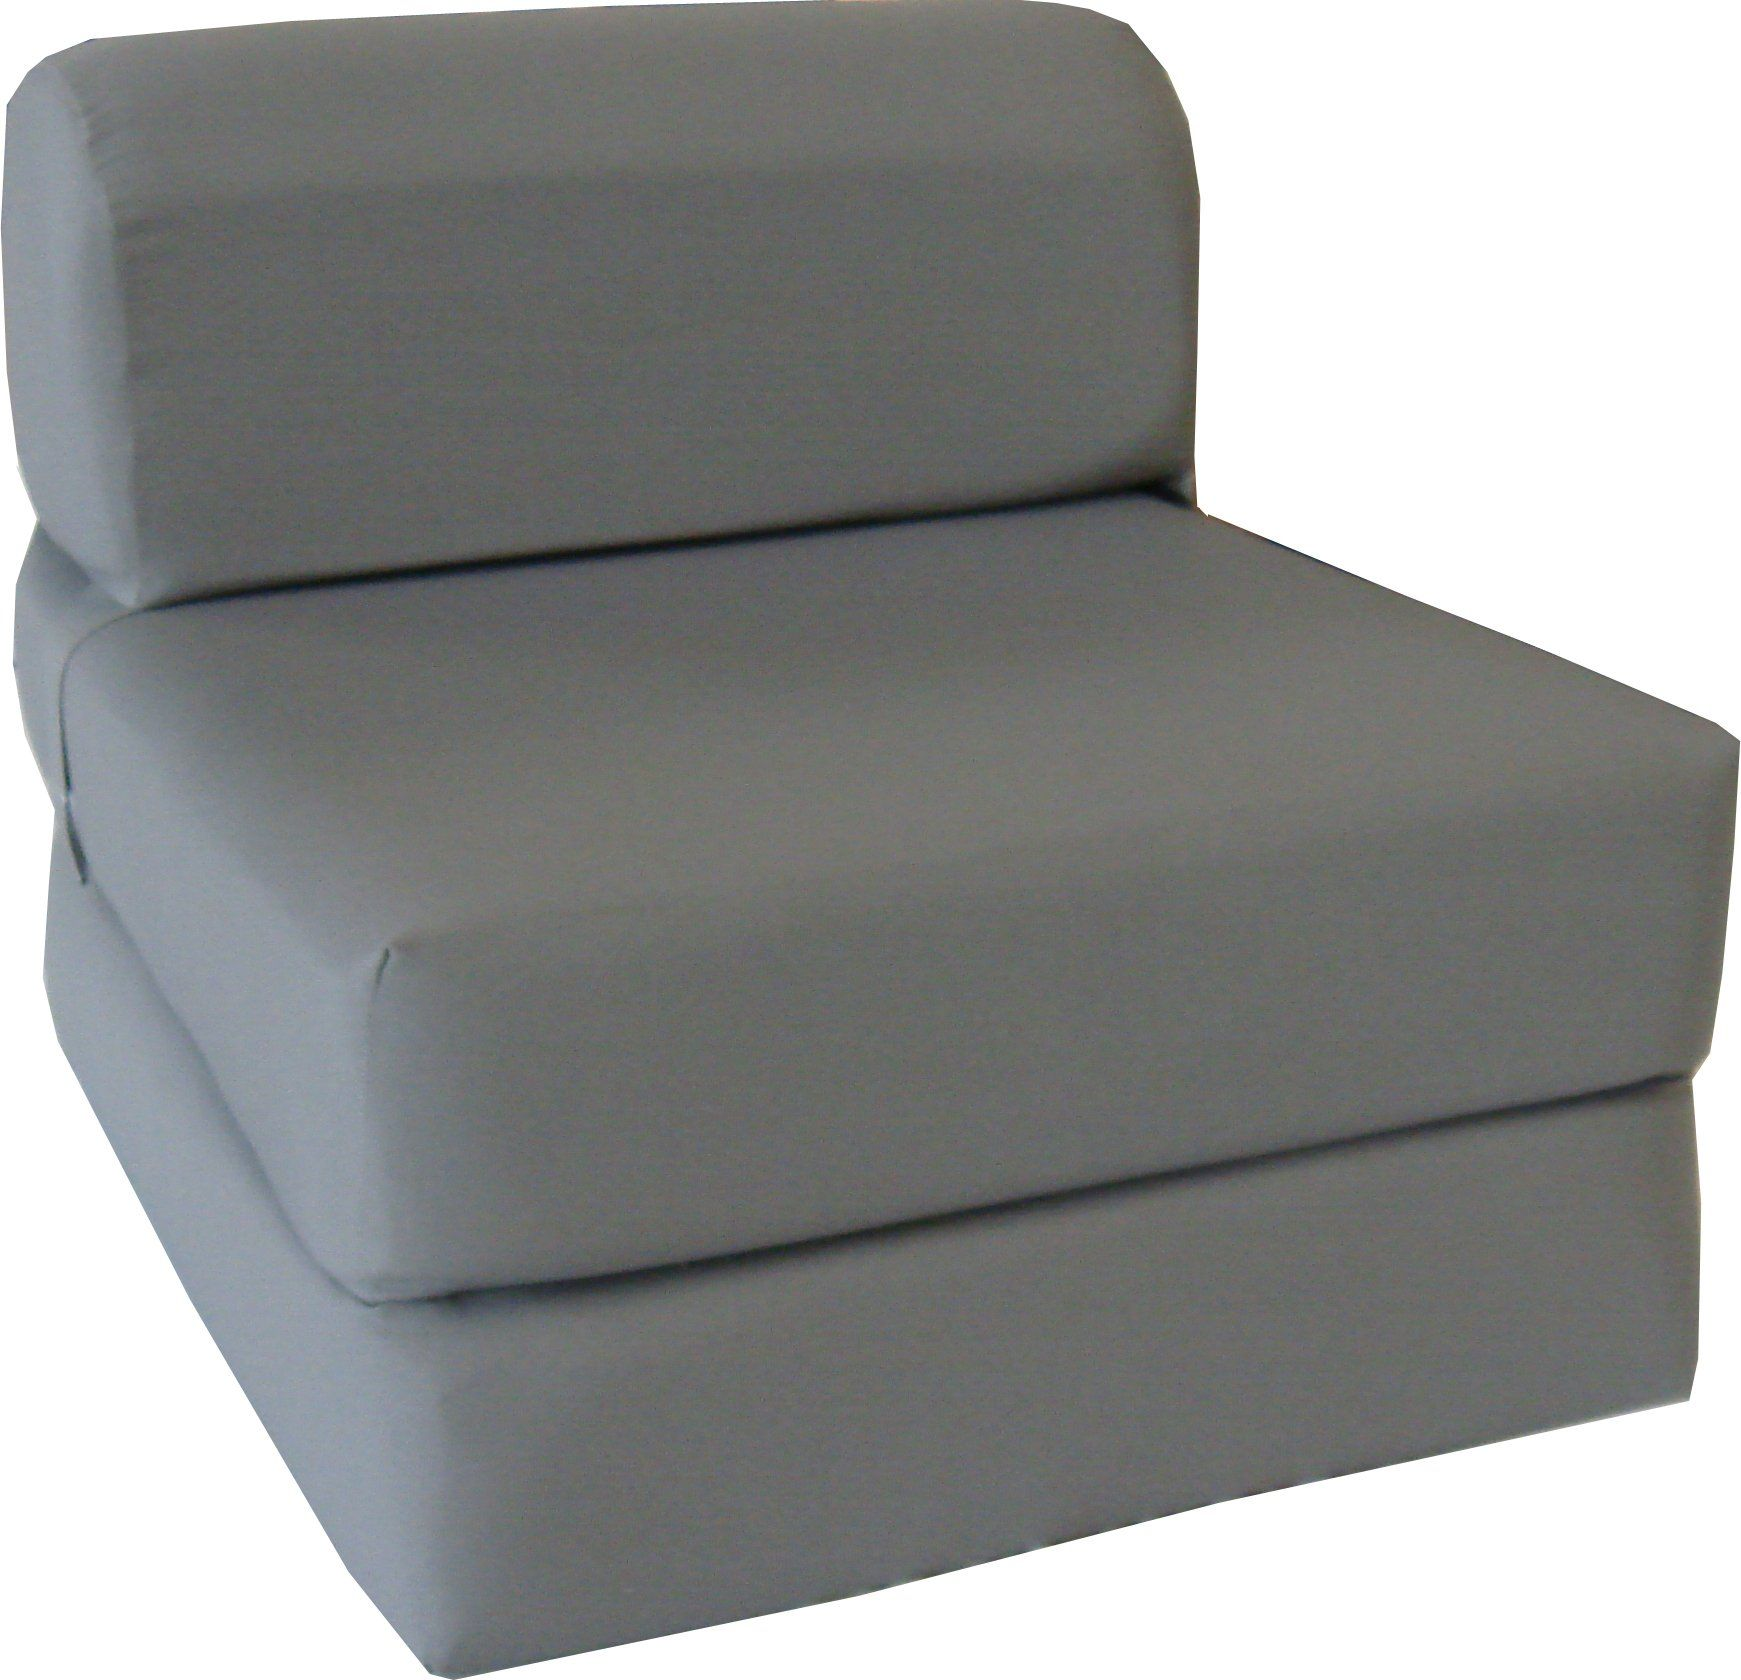 Amazon.com - Gray Sleeper Chair Folding Foam Bed Sized 6 ...